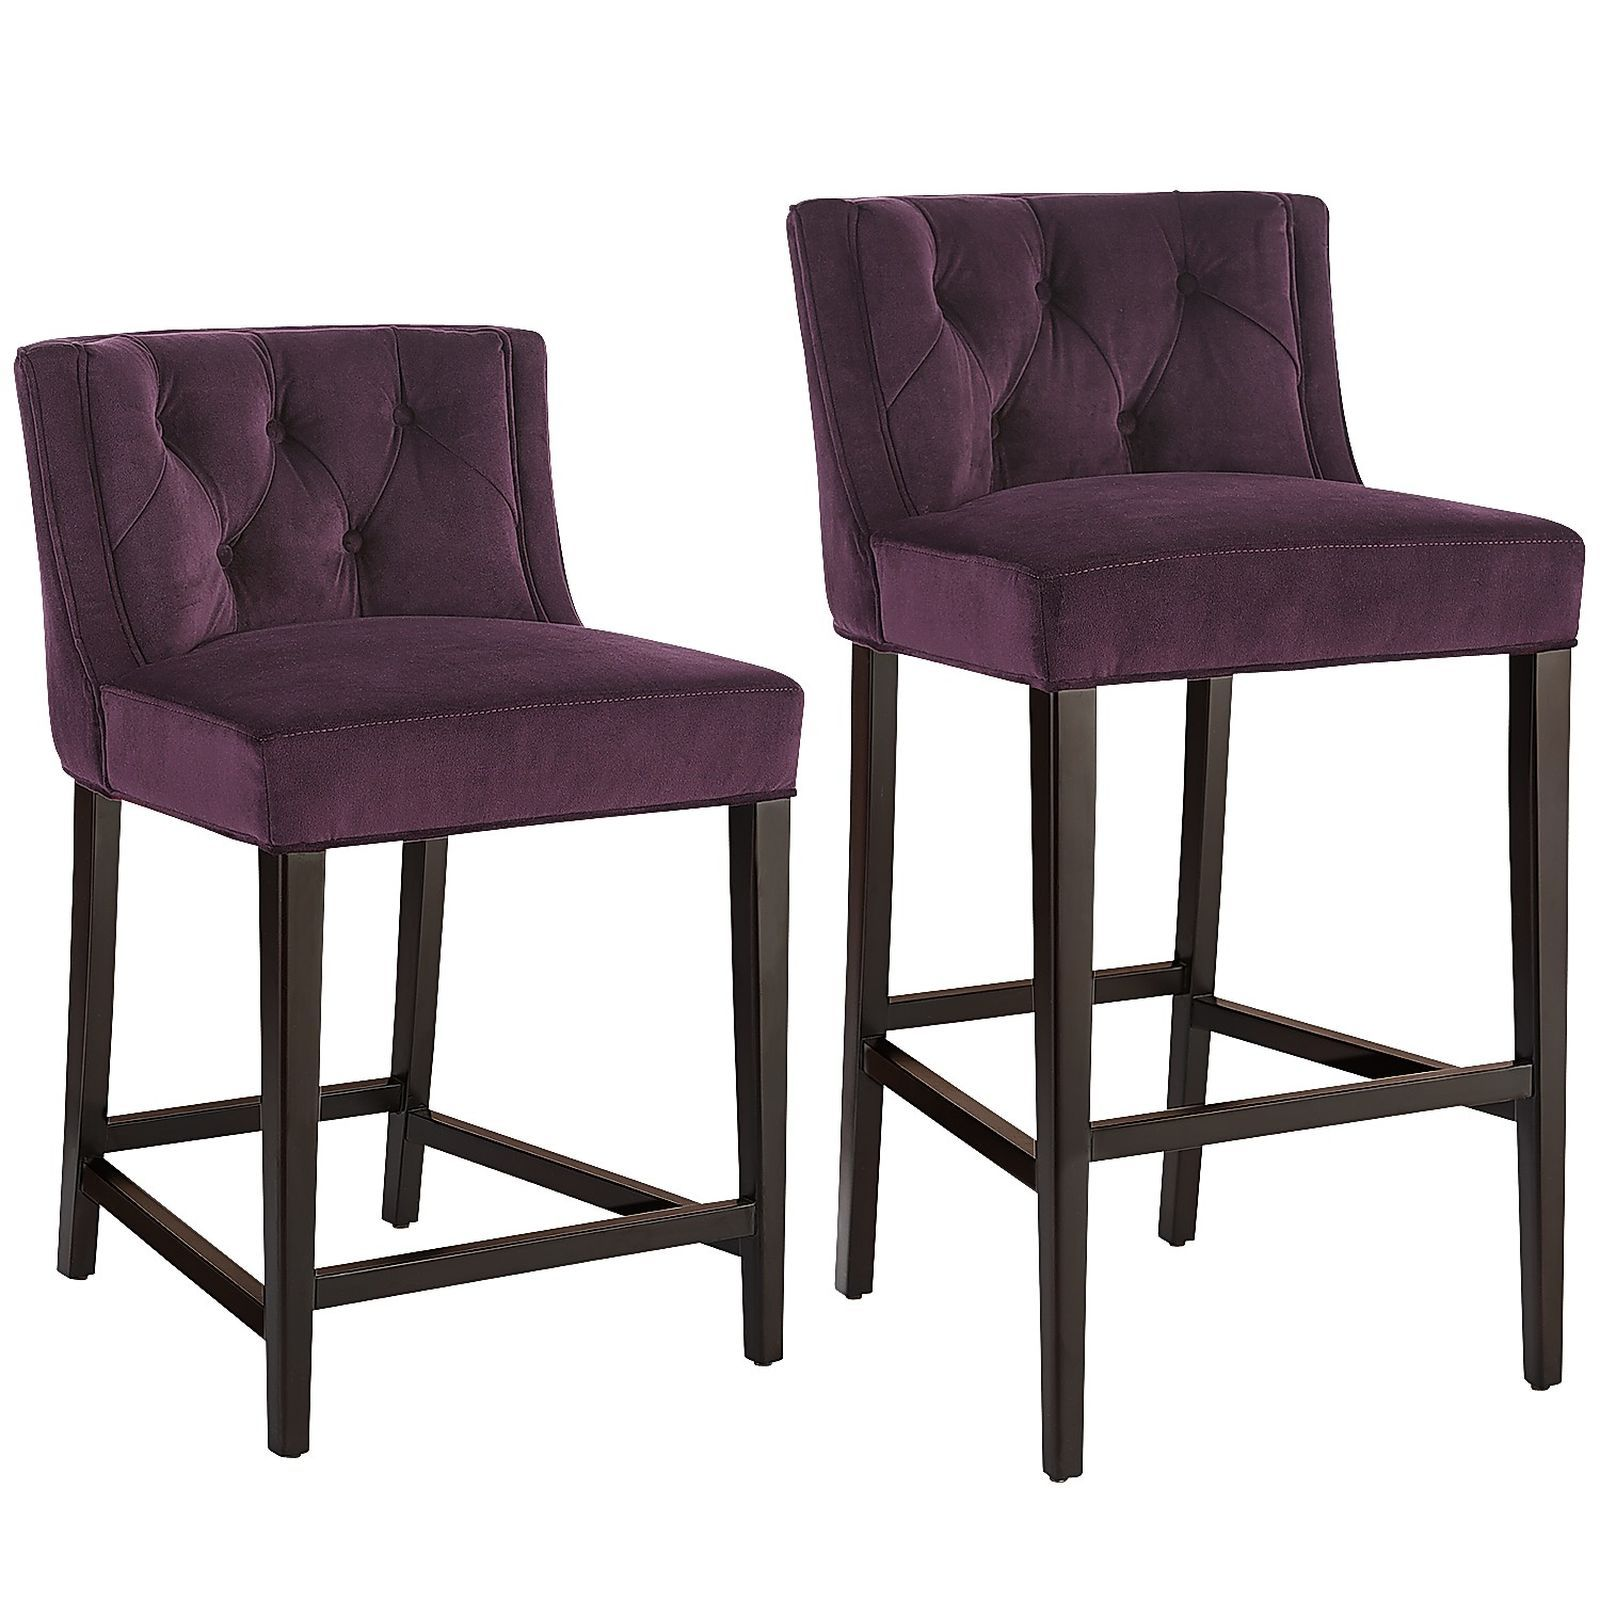 Admirable Elegant Yet Practical Our Gisle Bar And Counter Stools Are Andrewgaddart Wooden Chair Designs For Living Room Andrewgaddartcom